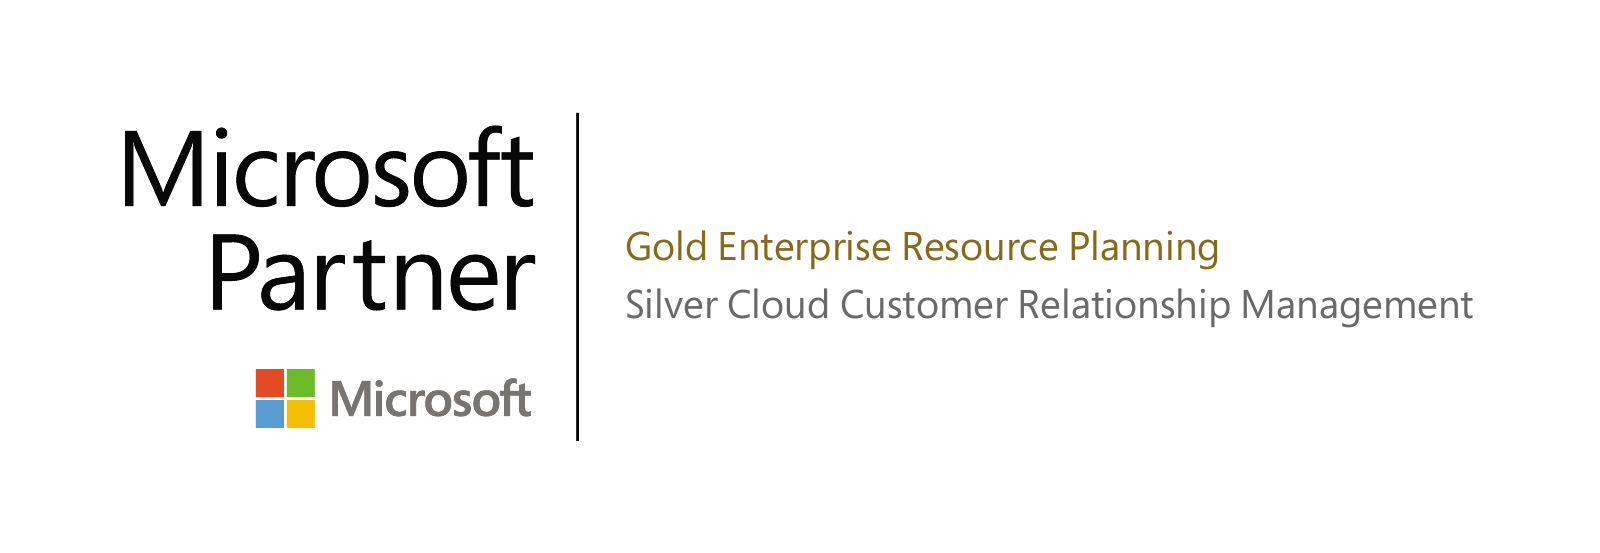 Stoneridge software earns silver microsoft cloud crm partner stoneridge earns silver microsoft cloud crm partner xflitez Image collections